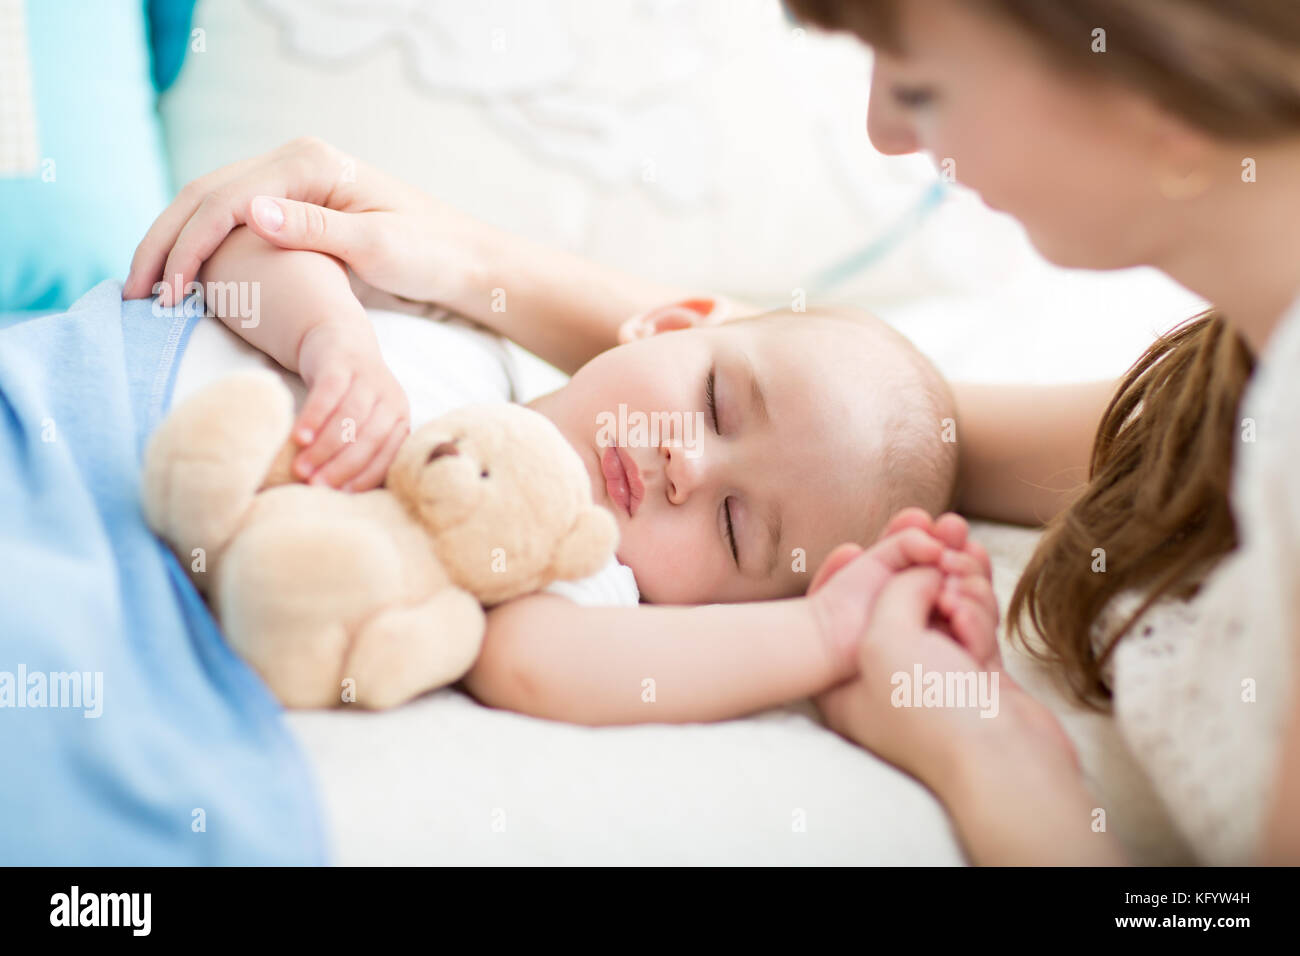 Motherhood. Parenthood. Young mother looking at her baby sleeping in bed - Stock Image